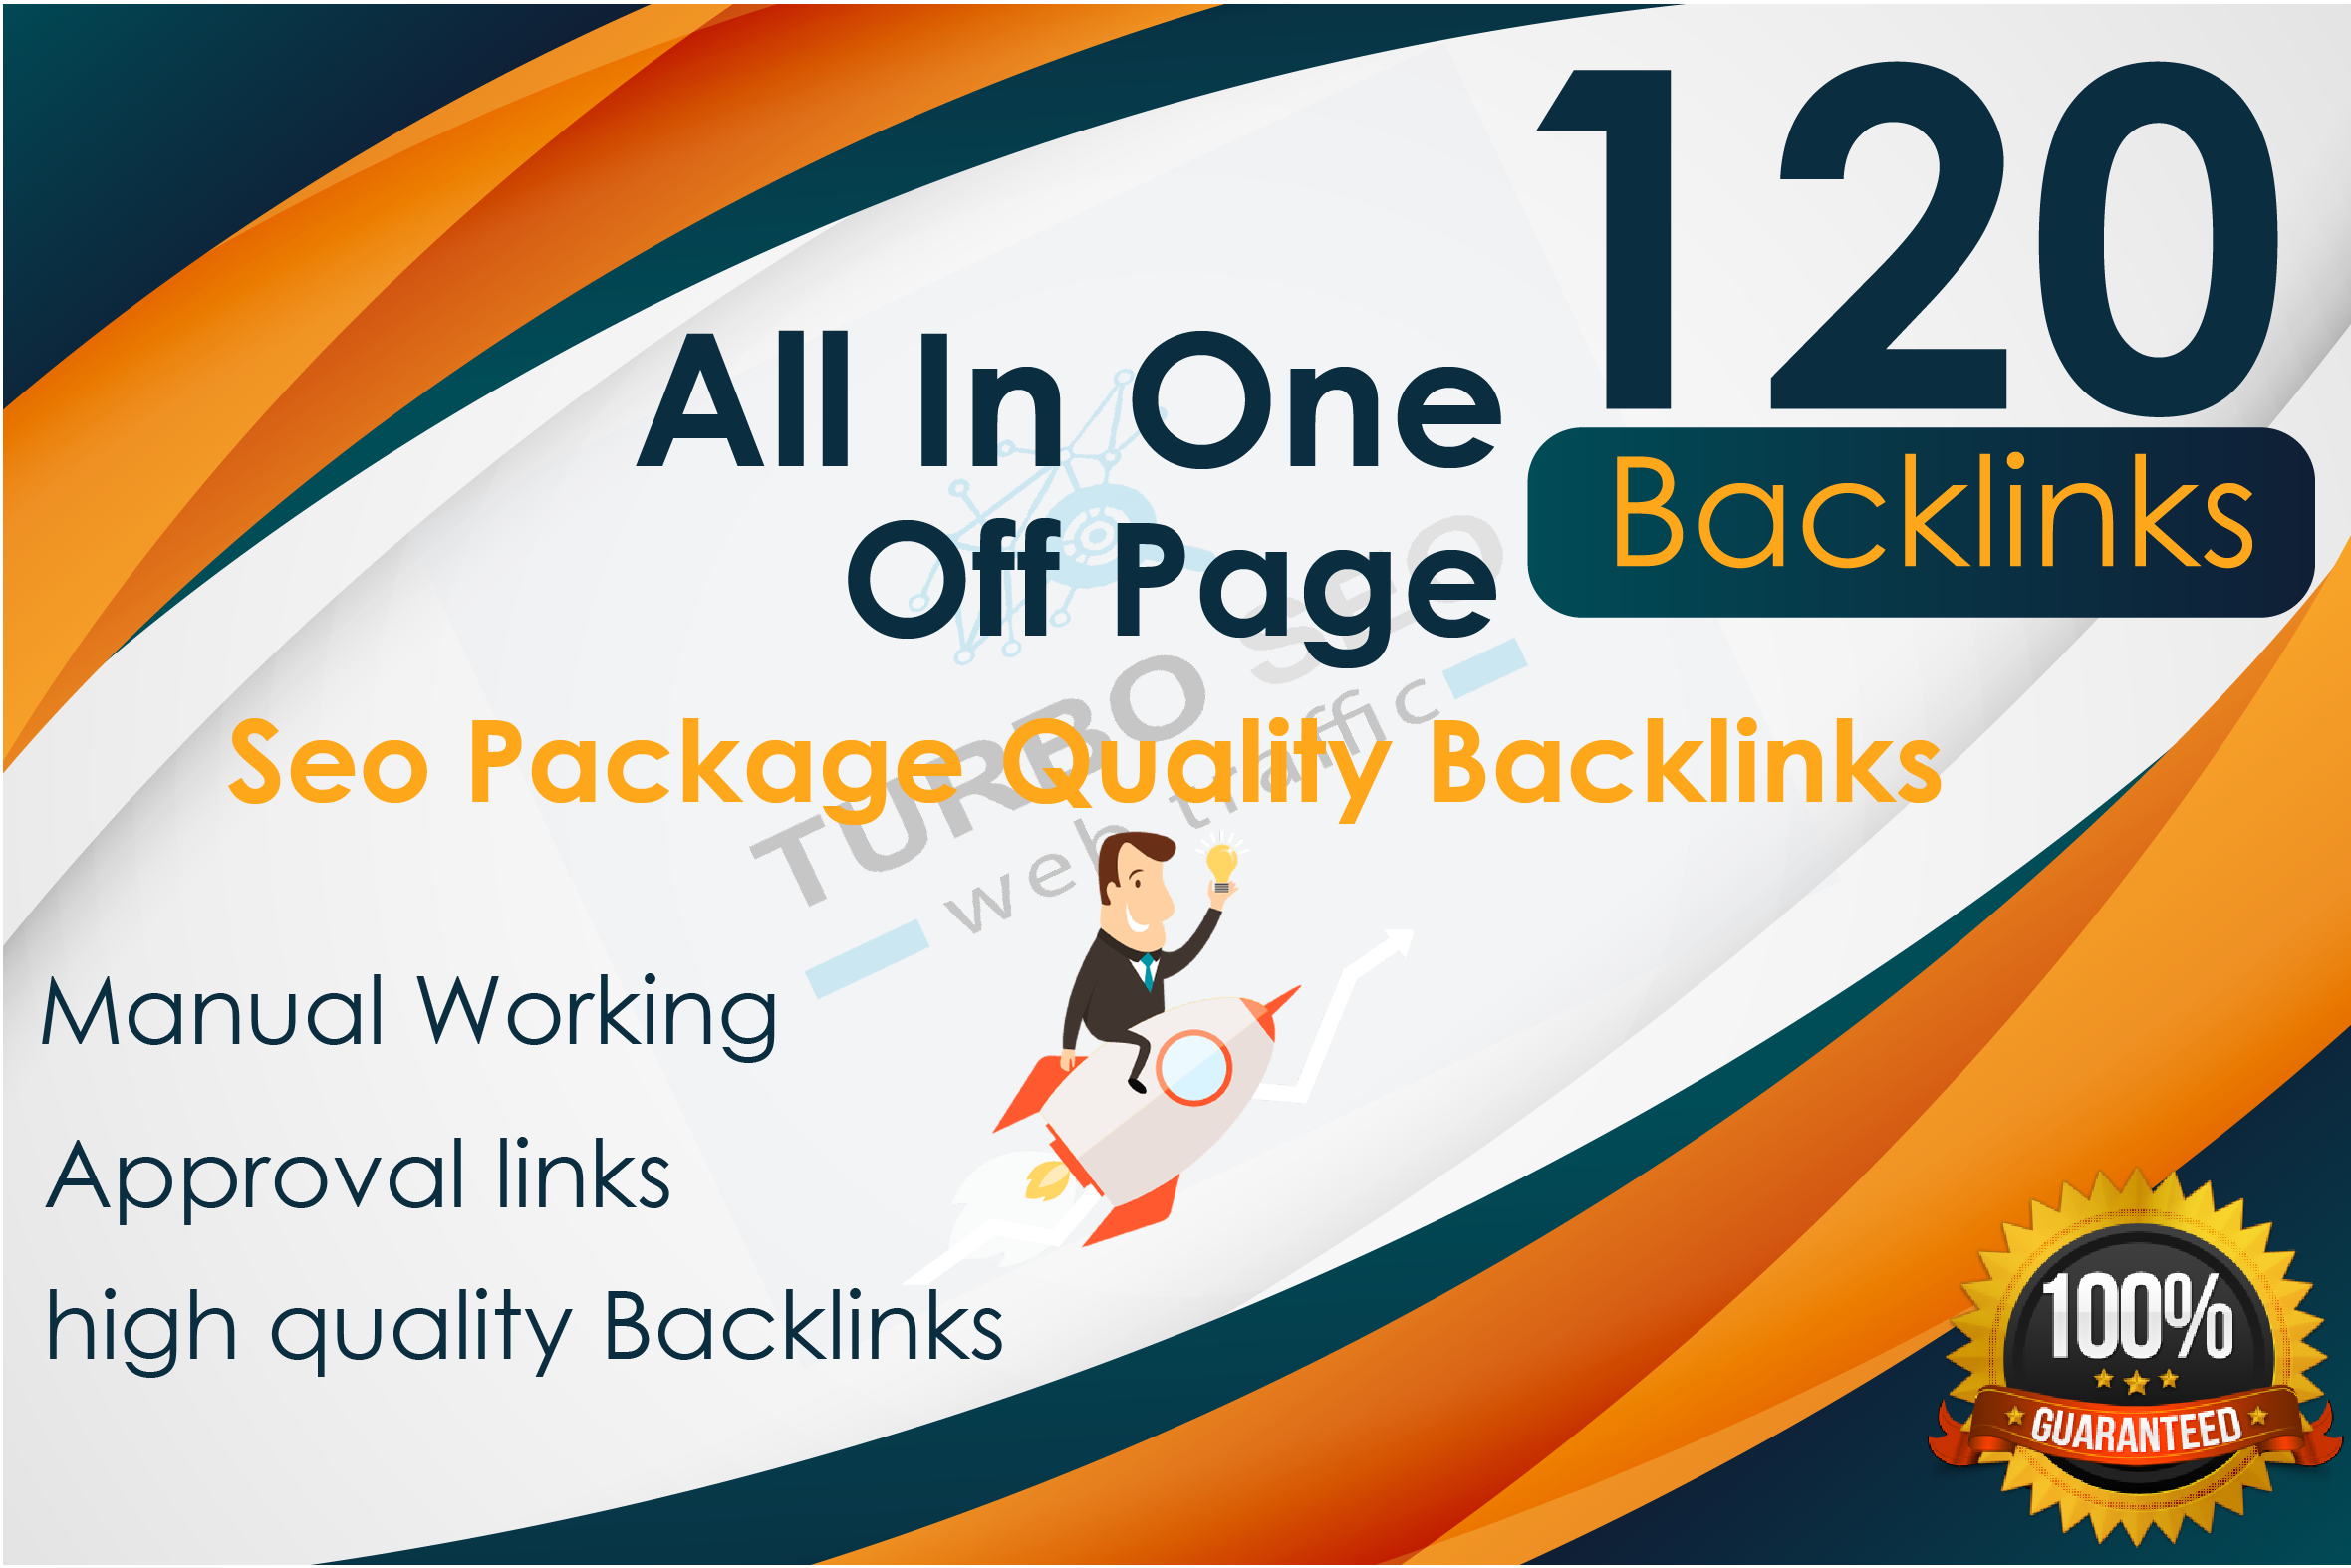 All In One Off Page Seo Package Get 120 high Quality Backlinks